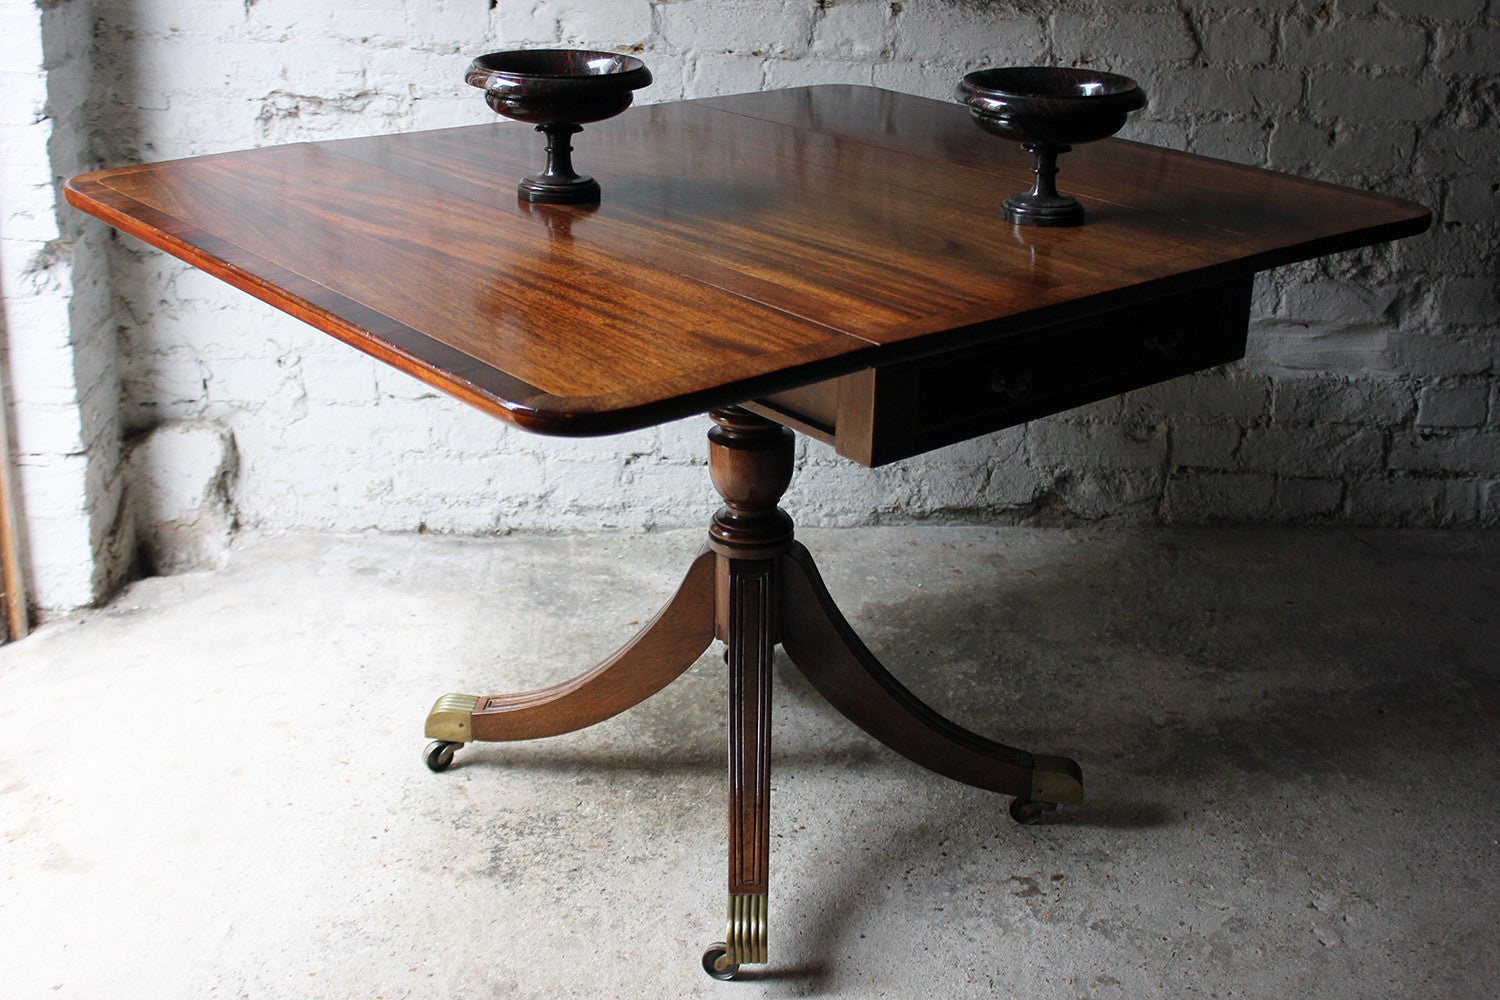 A Good Regency Period Inlaid Mahogany Pedestal Pembroke Table c.1825